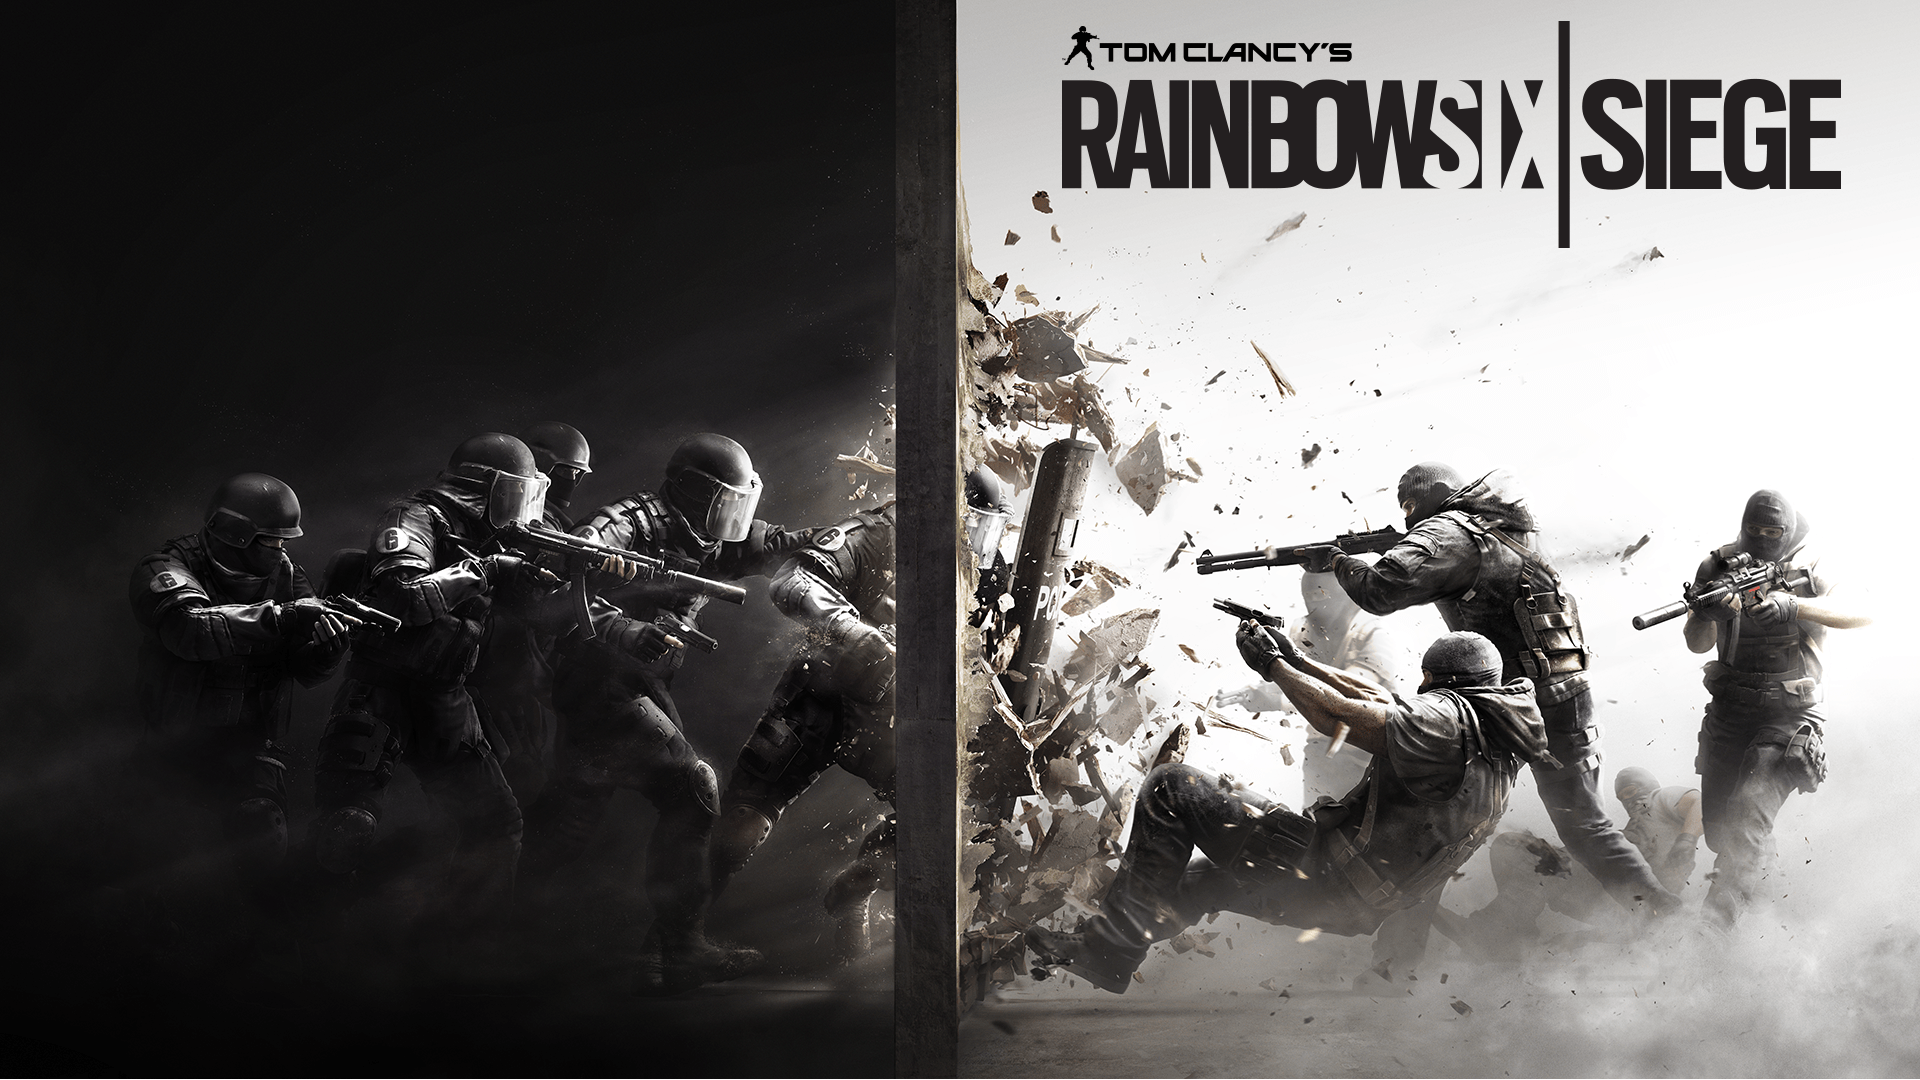 Tom Clancy's Rainbow Six Siege Full Action PC Game For Free Download